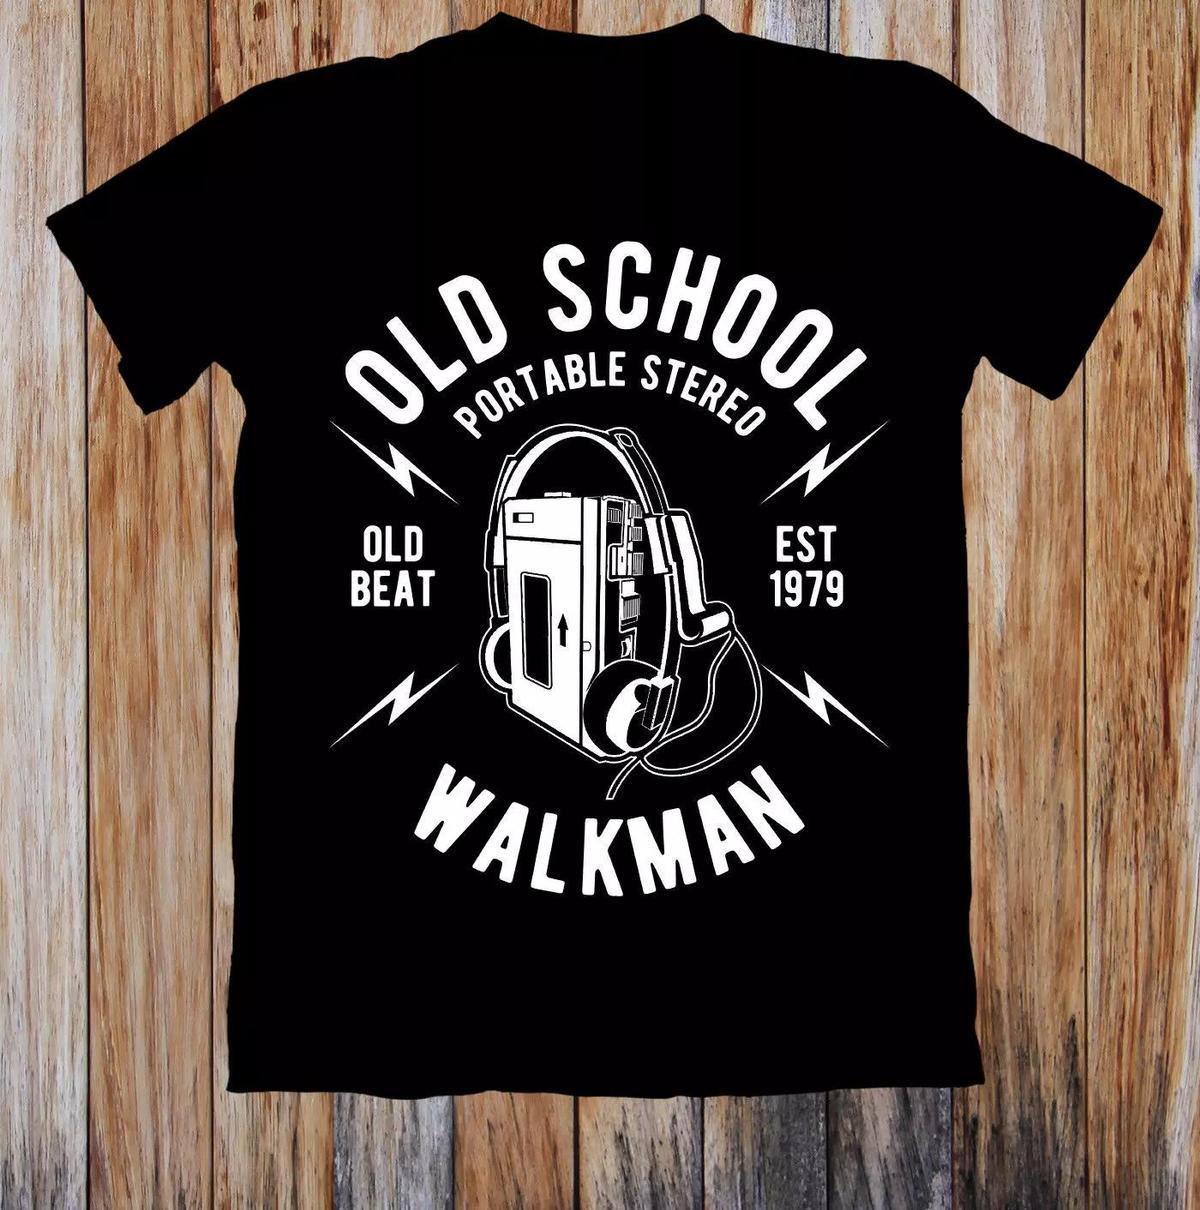 Old School Walkman Retro Unisex T Shirt Print T Shirt Men Summer